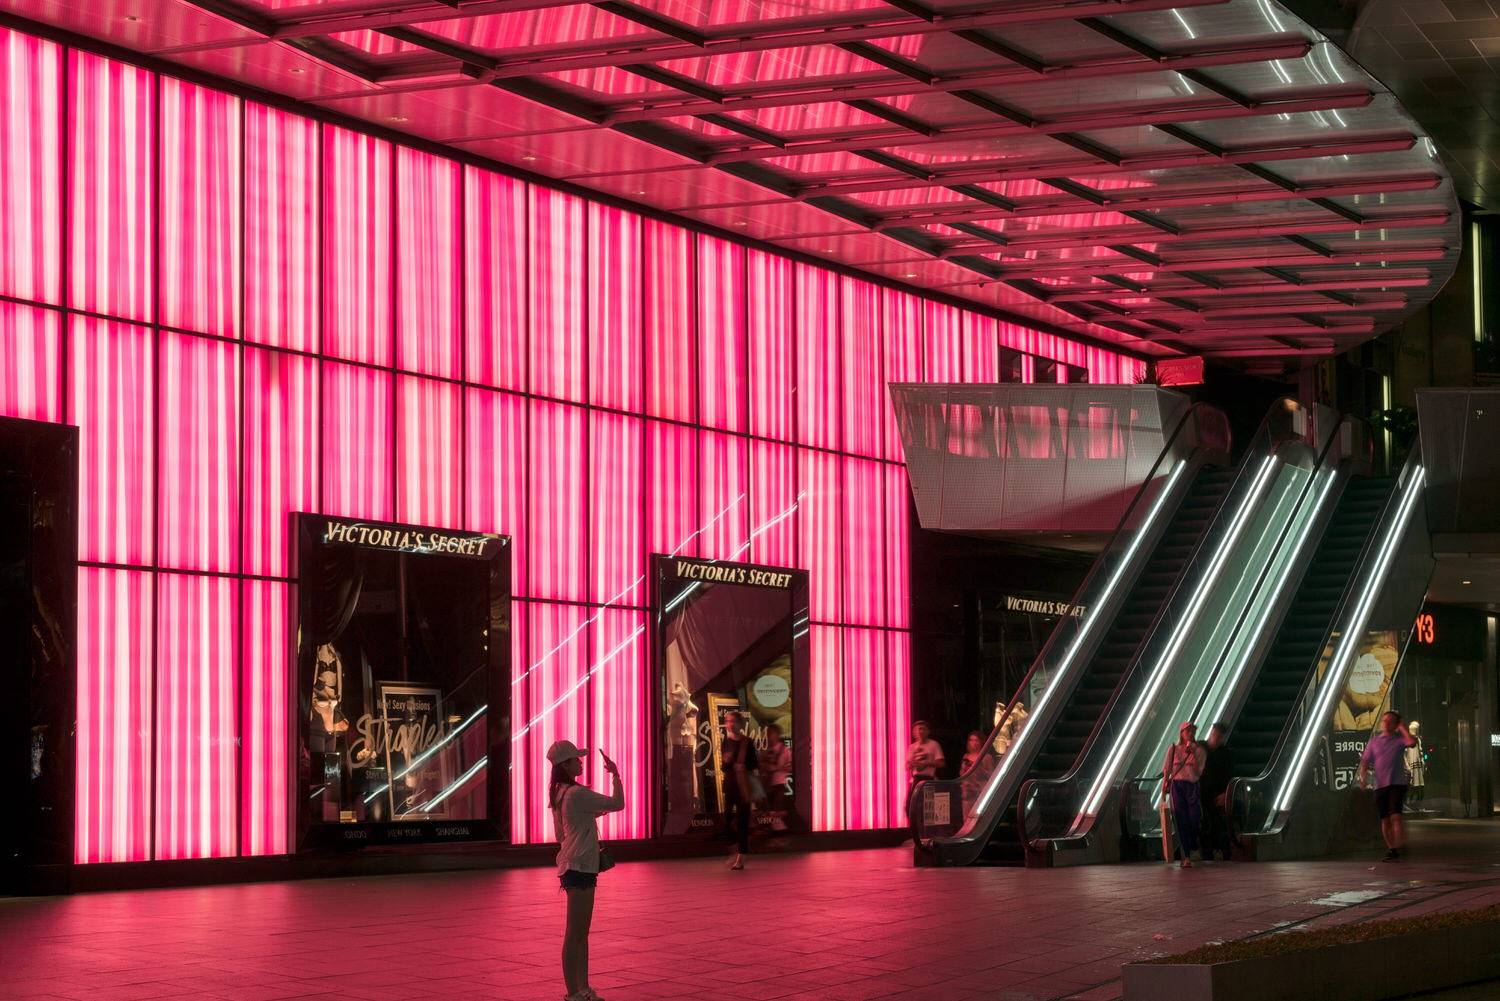 Vibrant    pink light    provides wonderful backlighting for this street scene along the famous    Orchard Road    in    Singapore   .